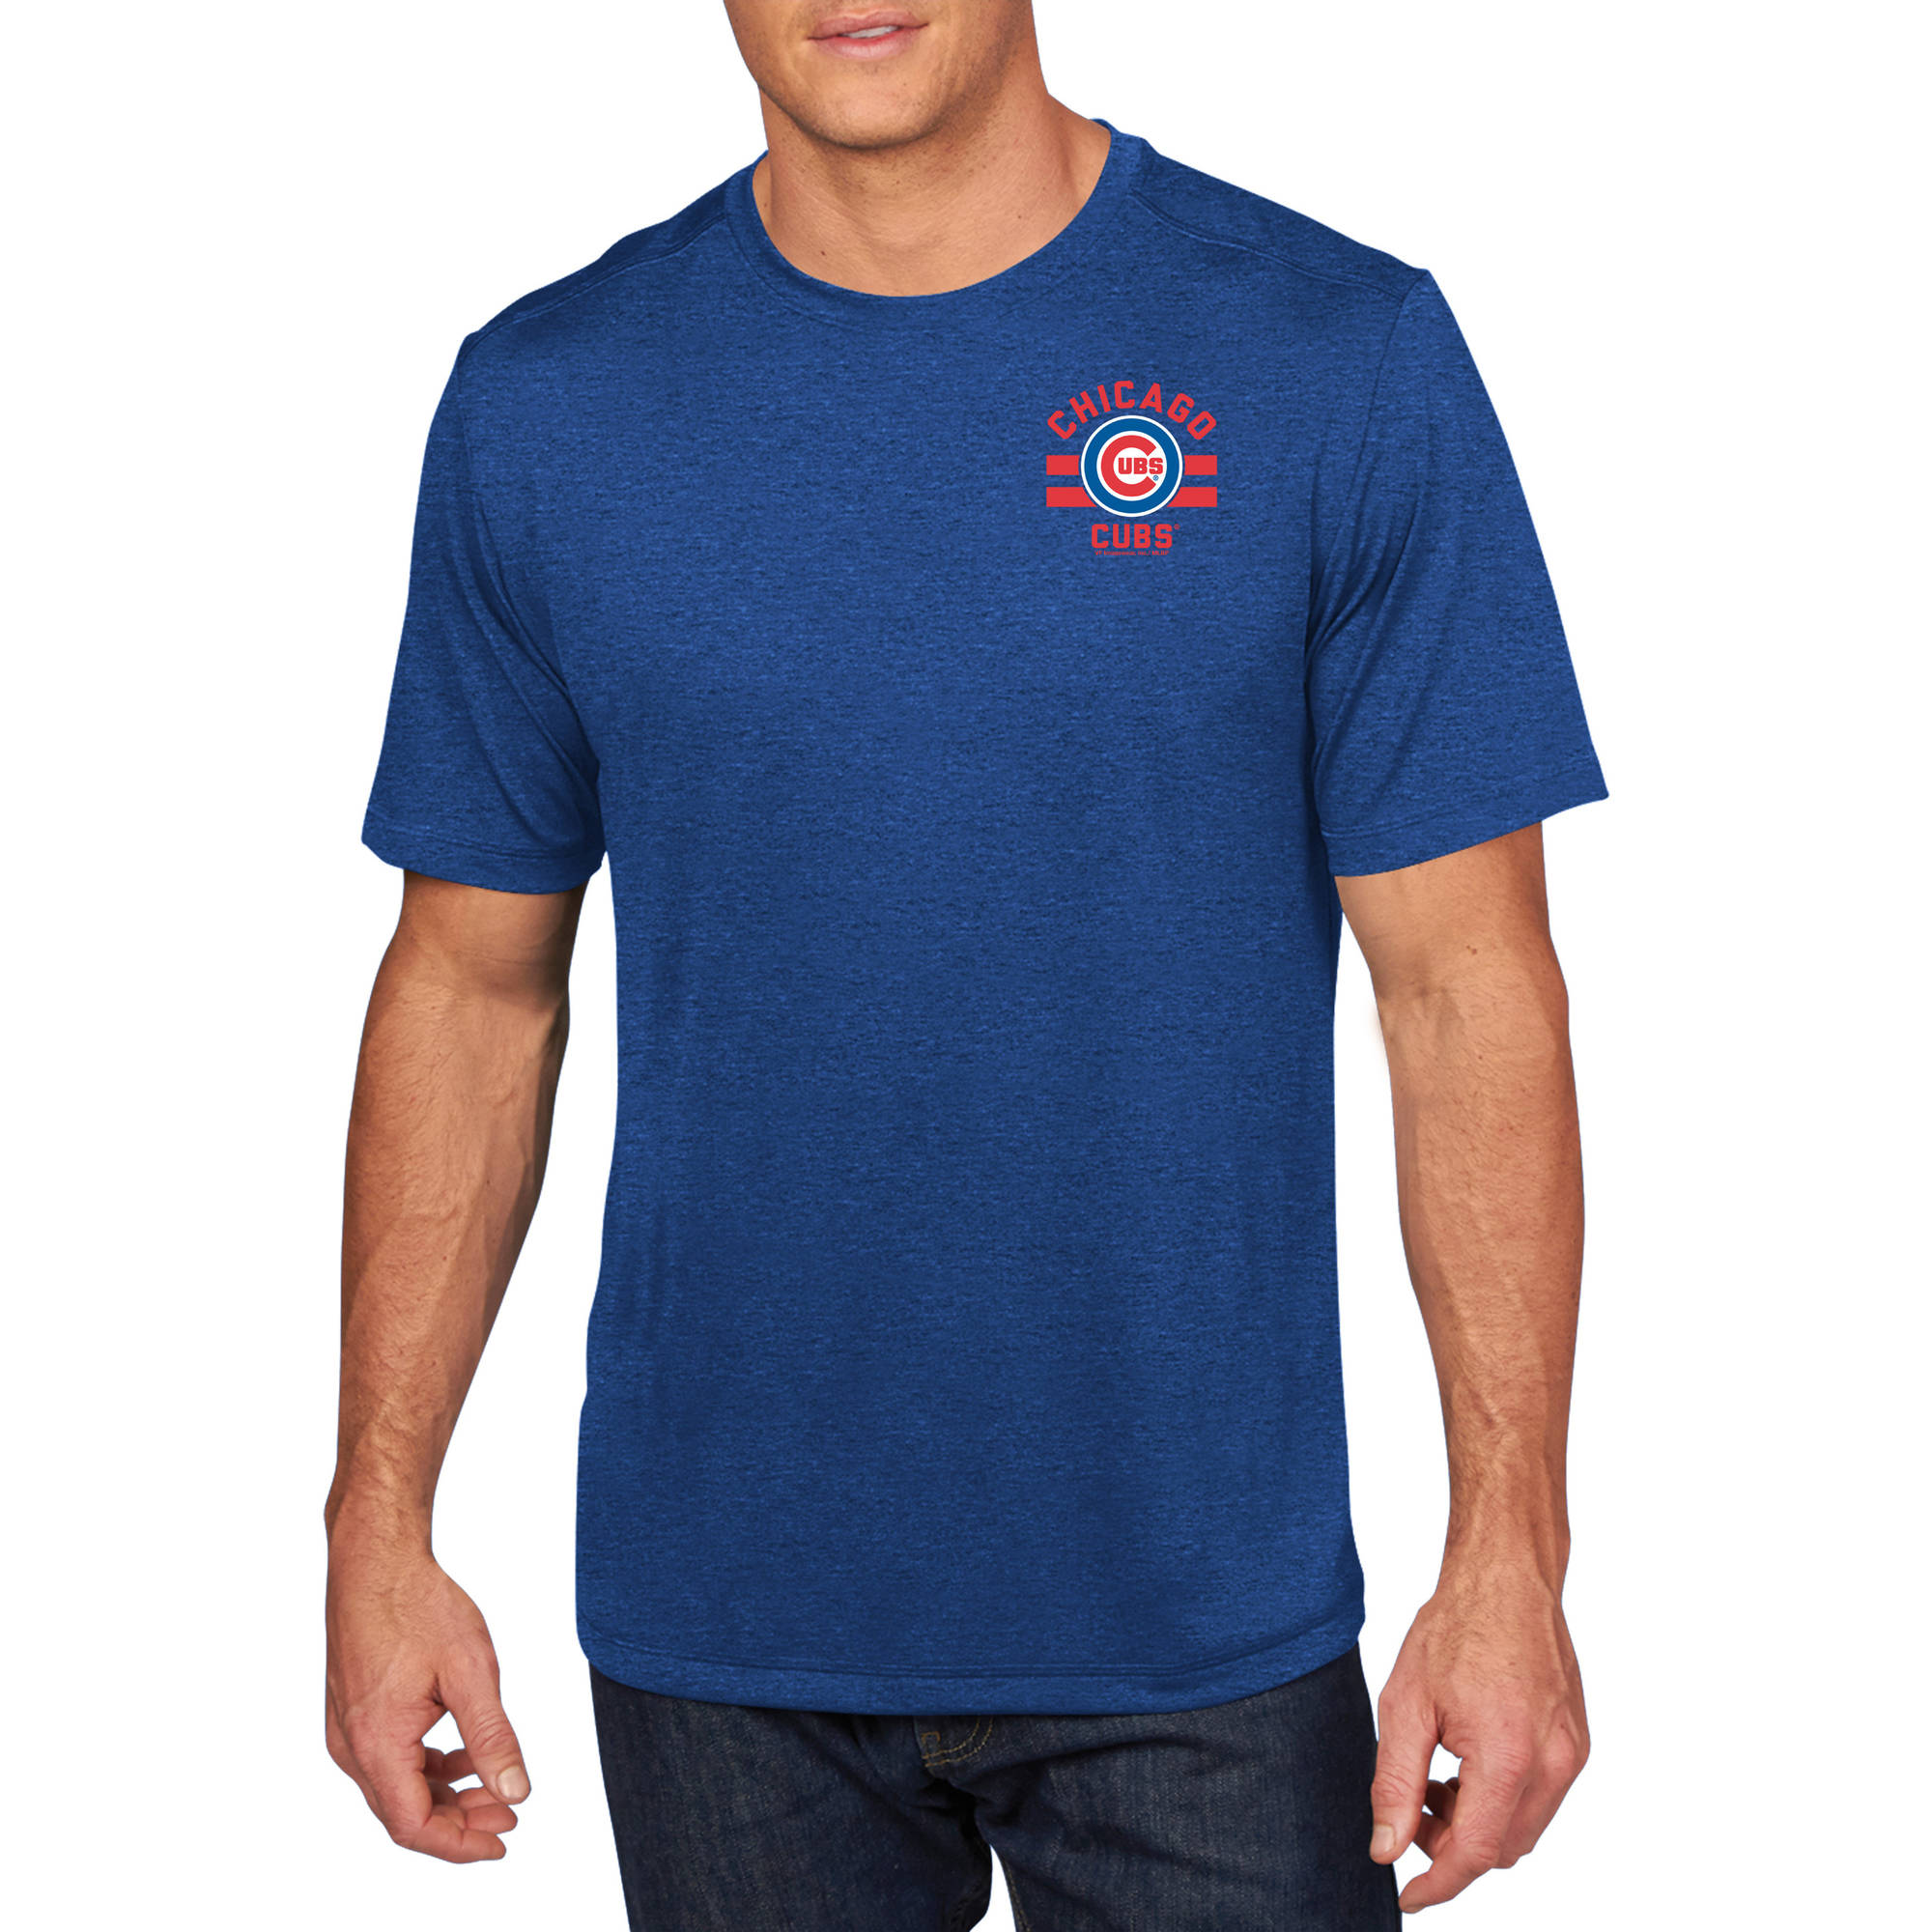 MLB - Mens Chicago Cubs Short Sleeve Synthetic Team Tee